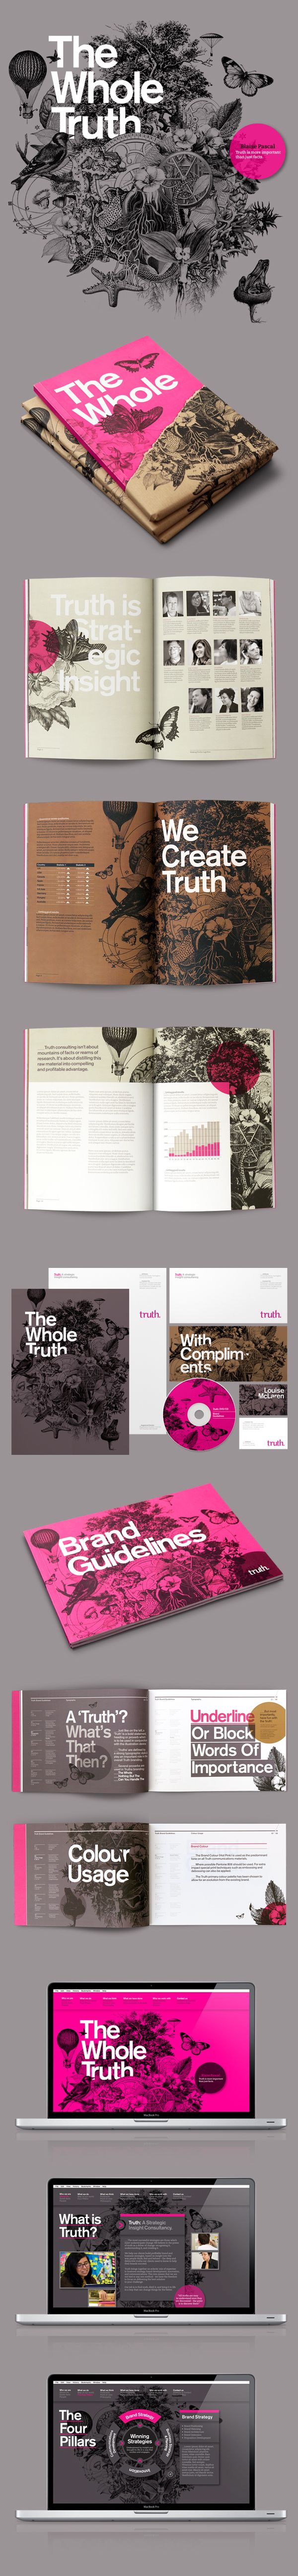 The Whole Truth Branding Design